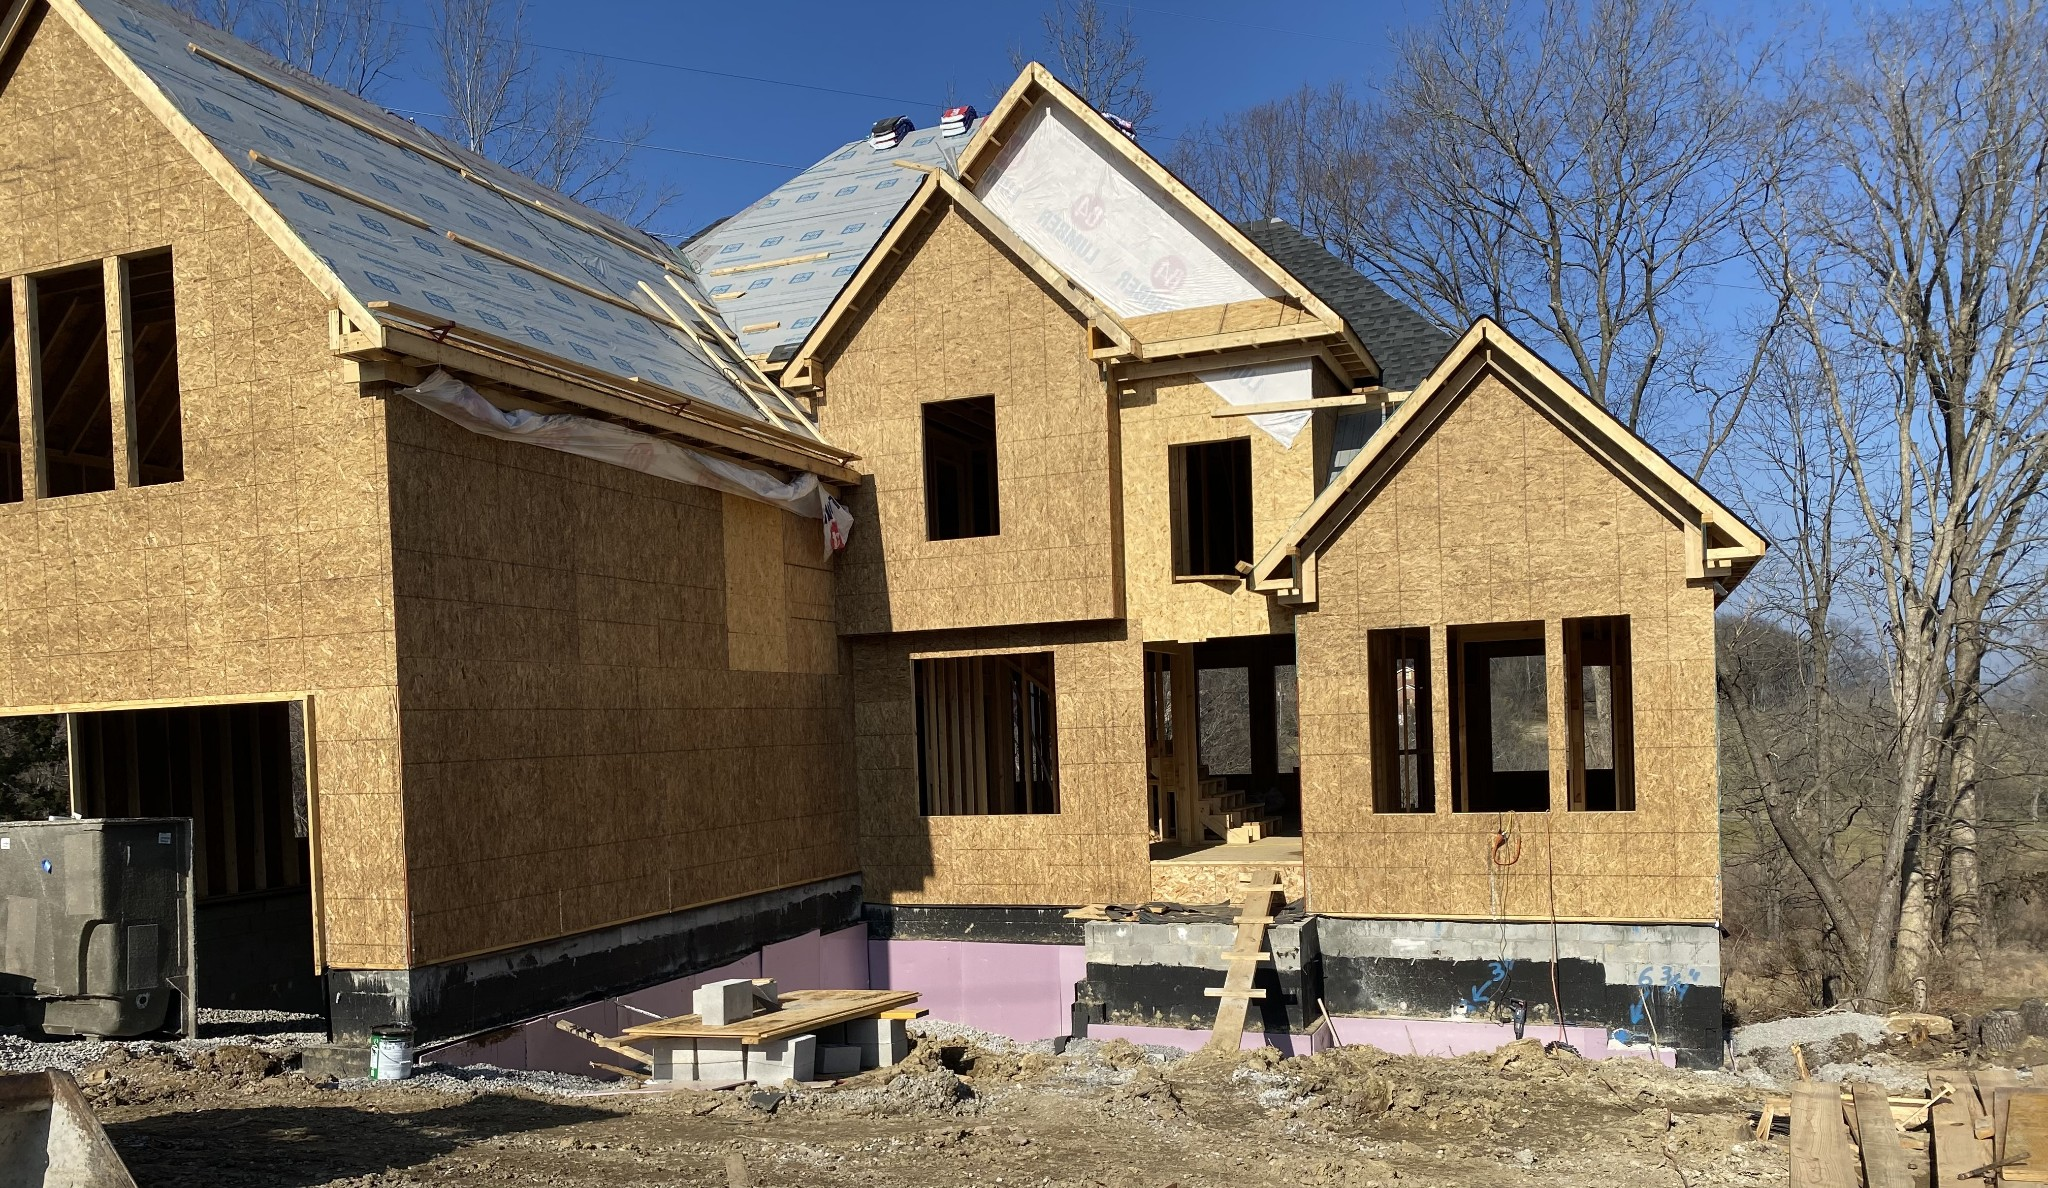 All expectations are exceeded in this custom, new construction home with the opportunity to make sel